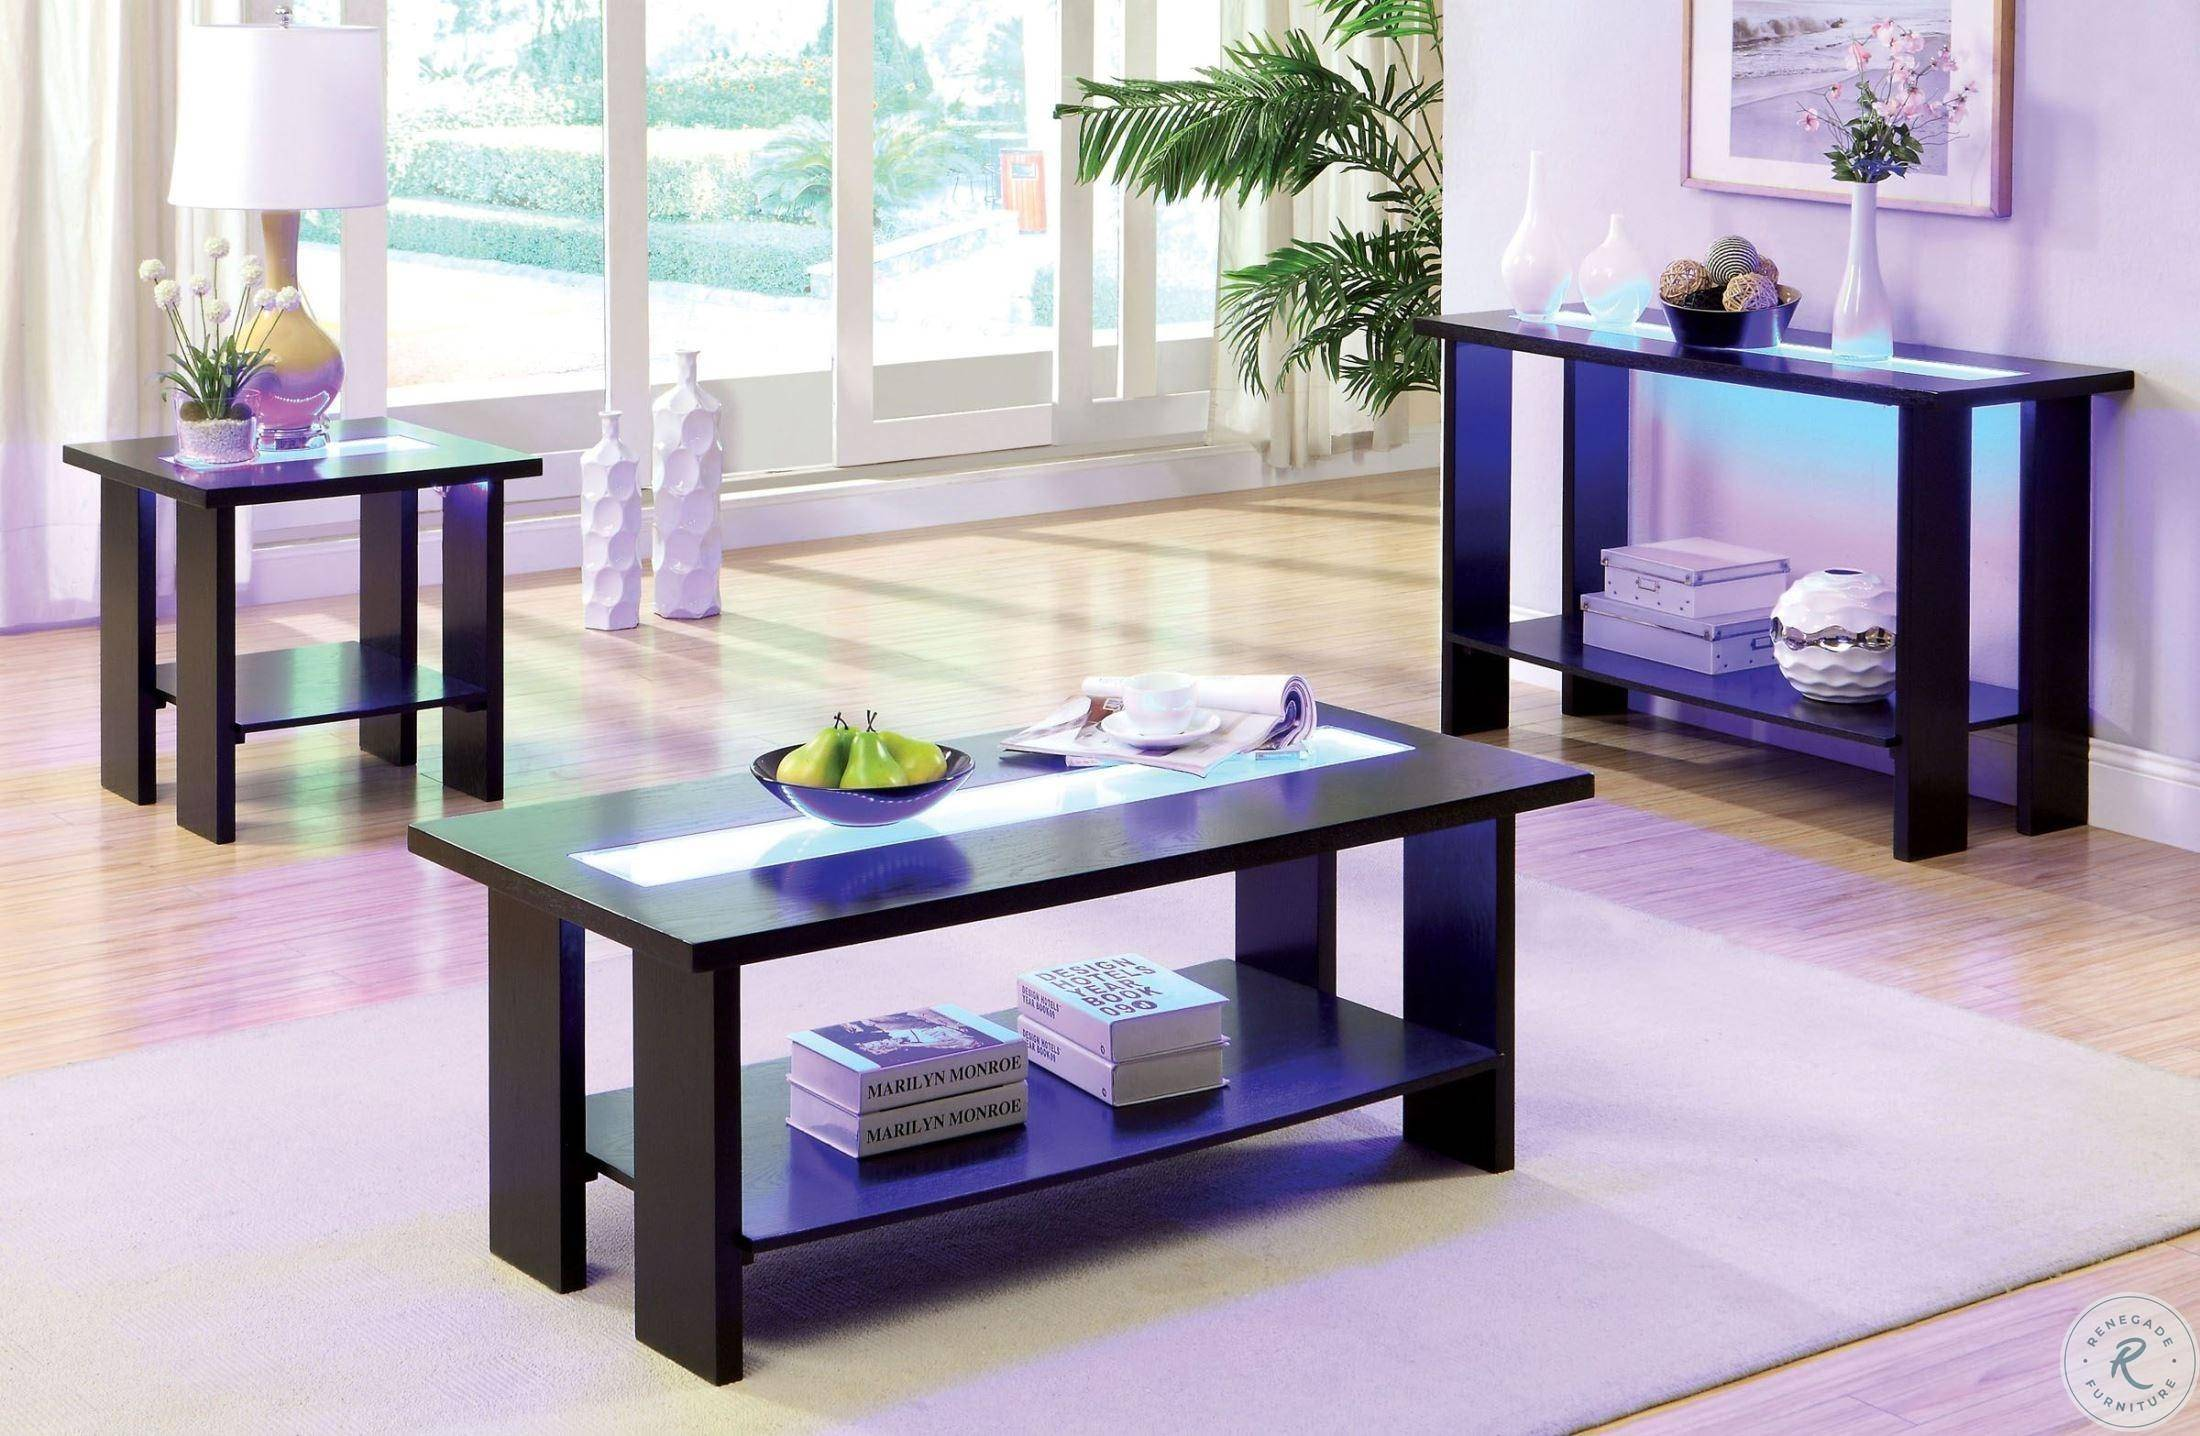 furniture of america luminar ii coffee table end table console table 3 pcs in espresso glass